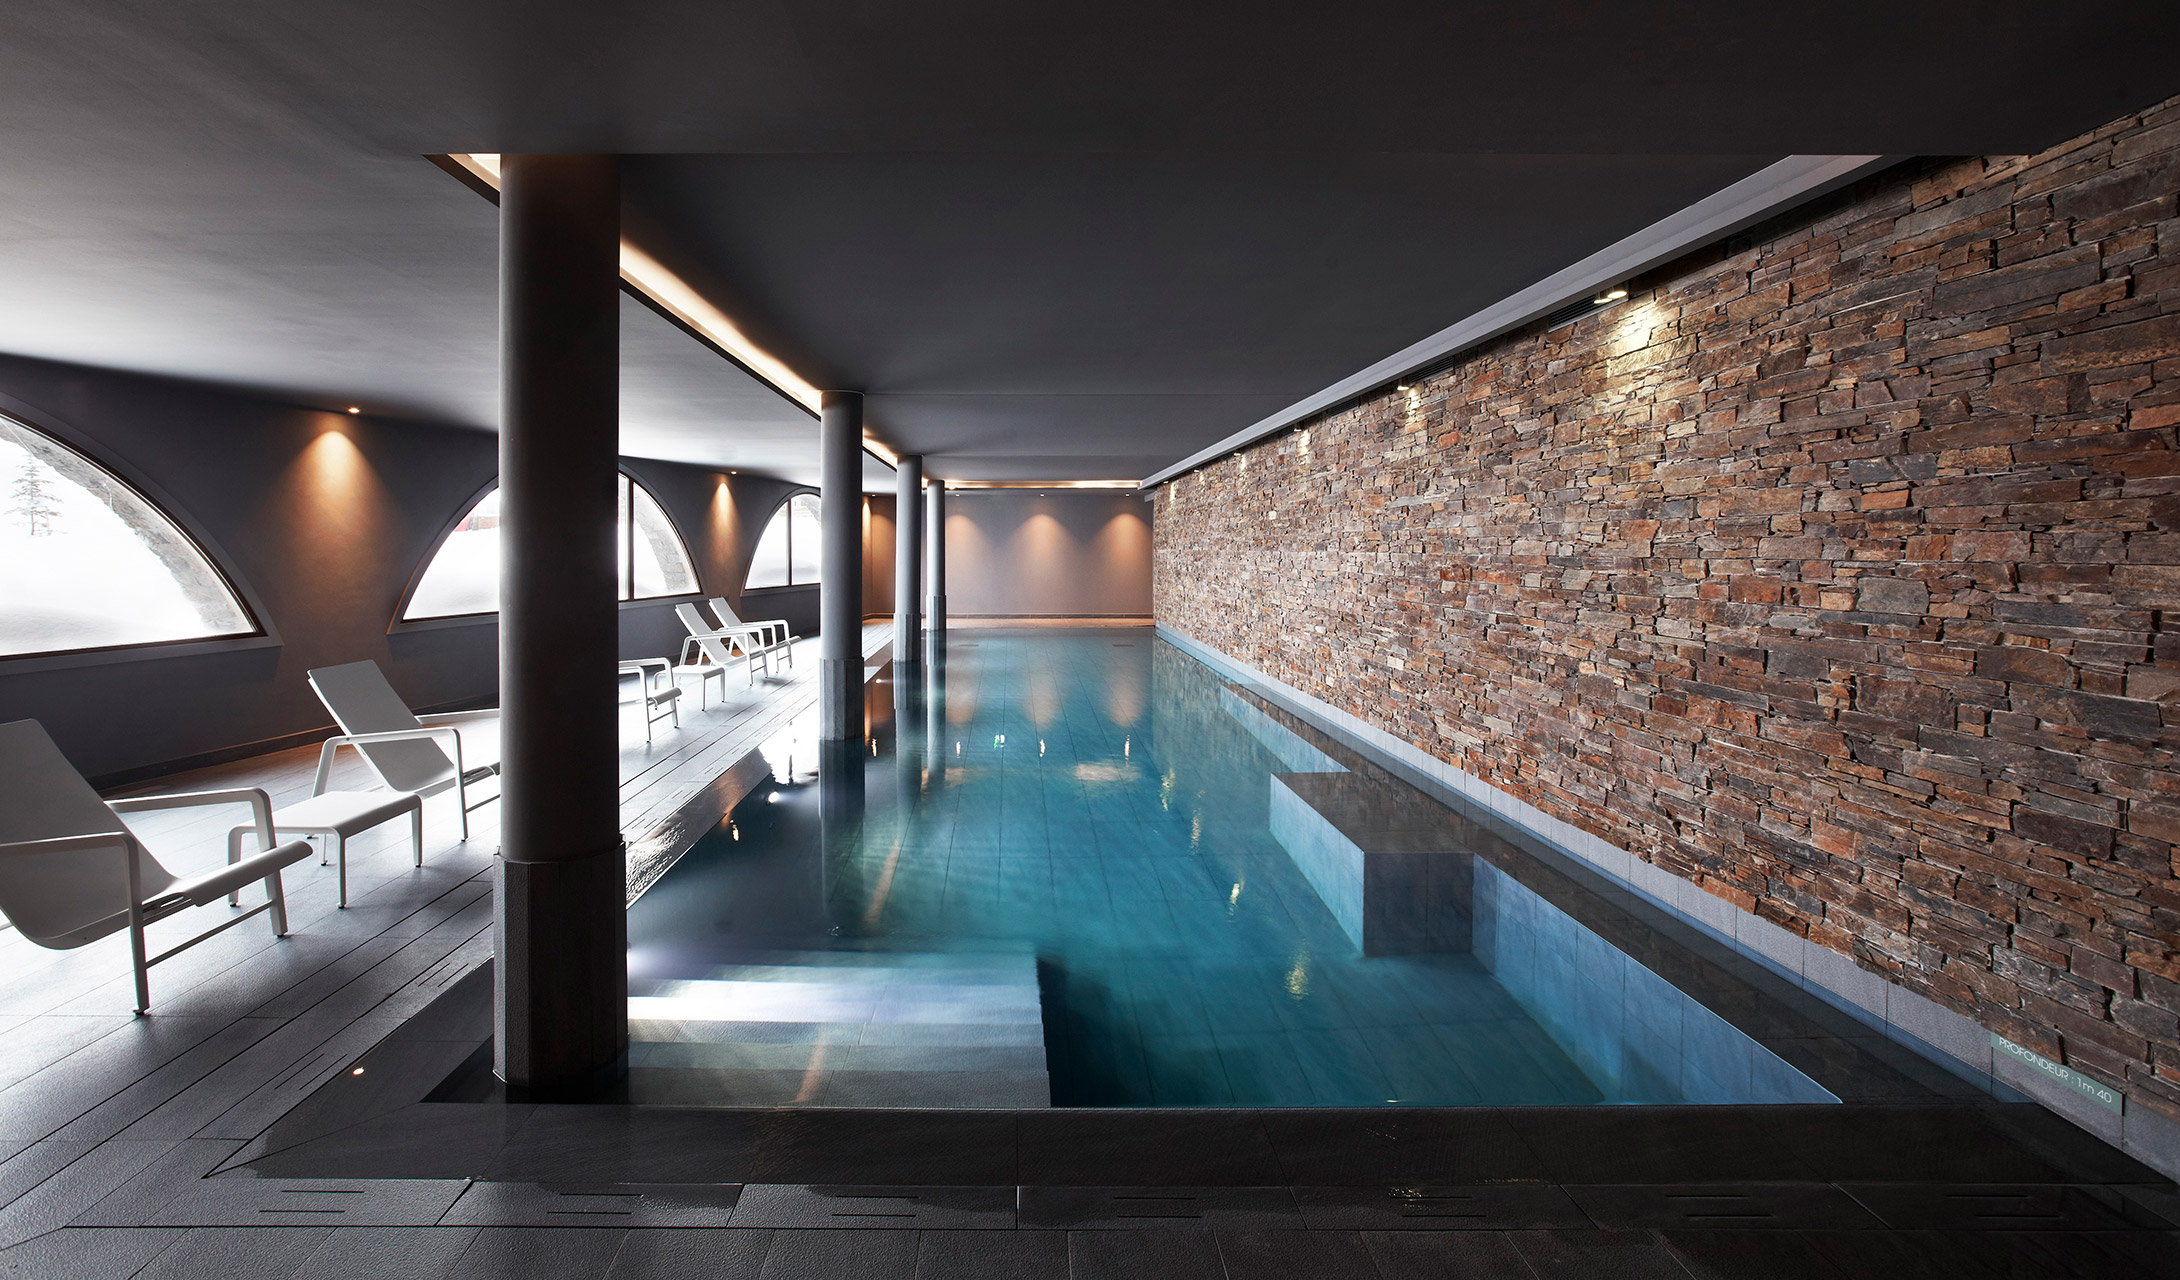 Le val thorens val thorens france design hotels for Design hotels of france